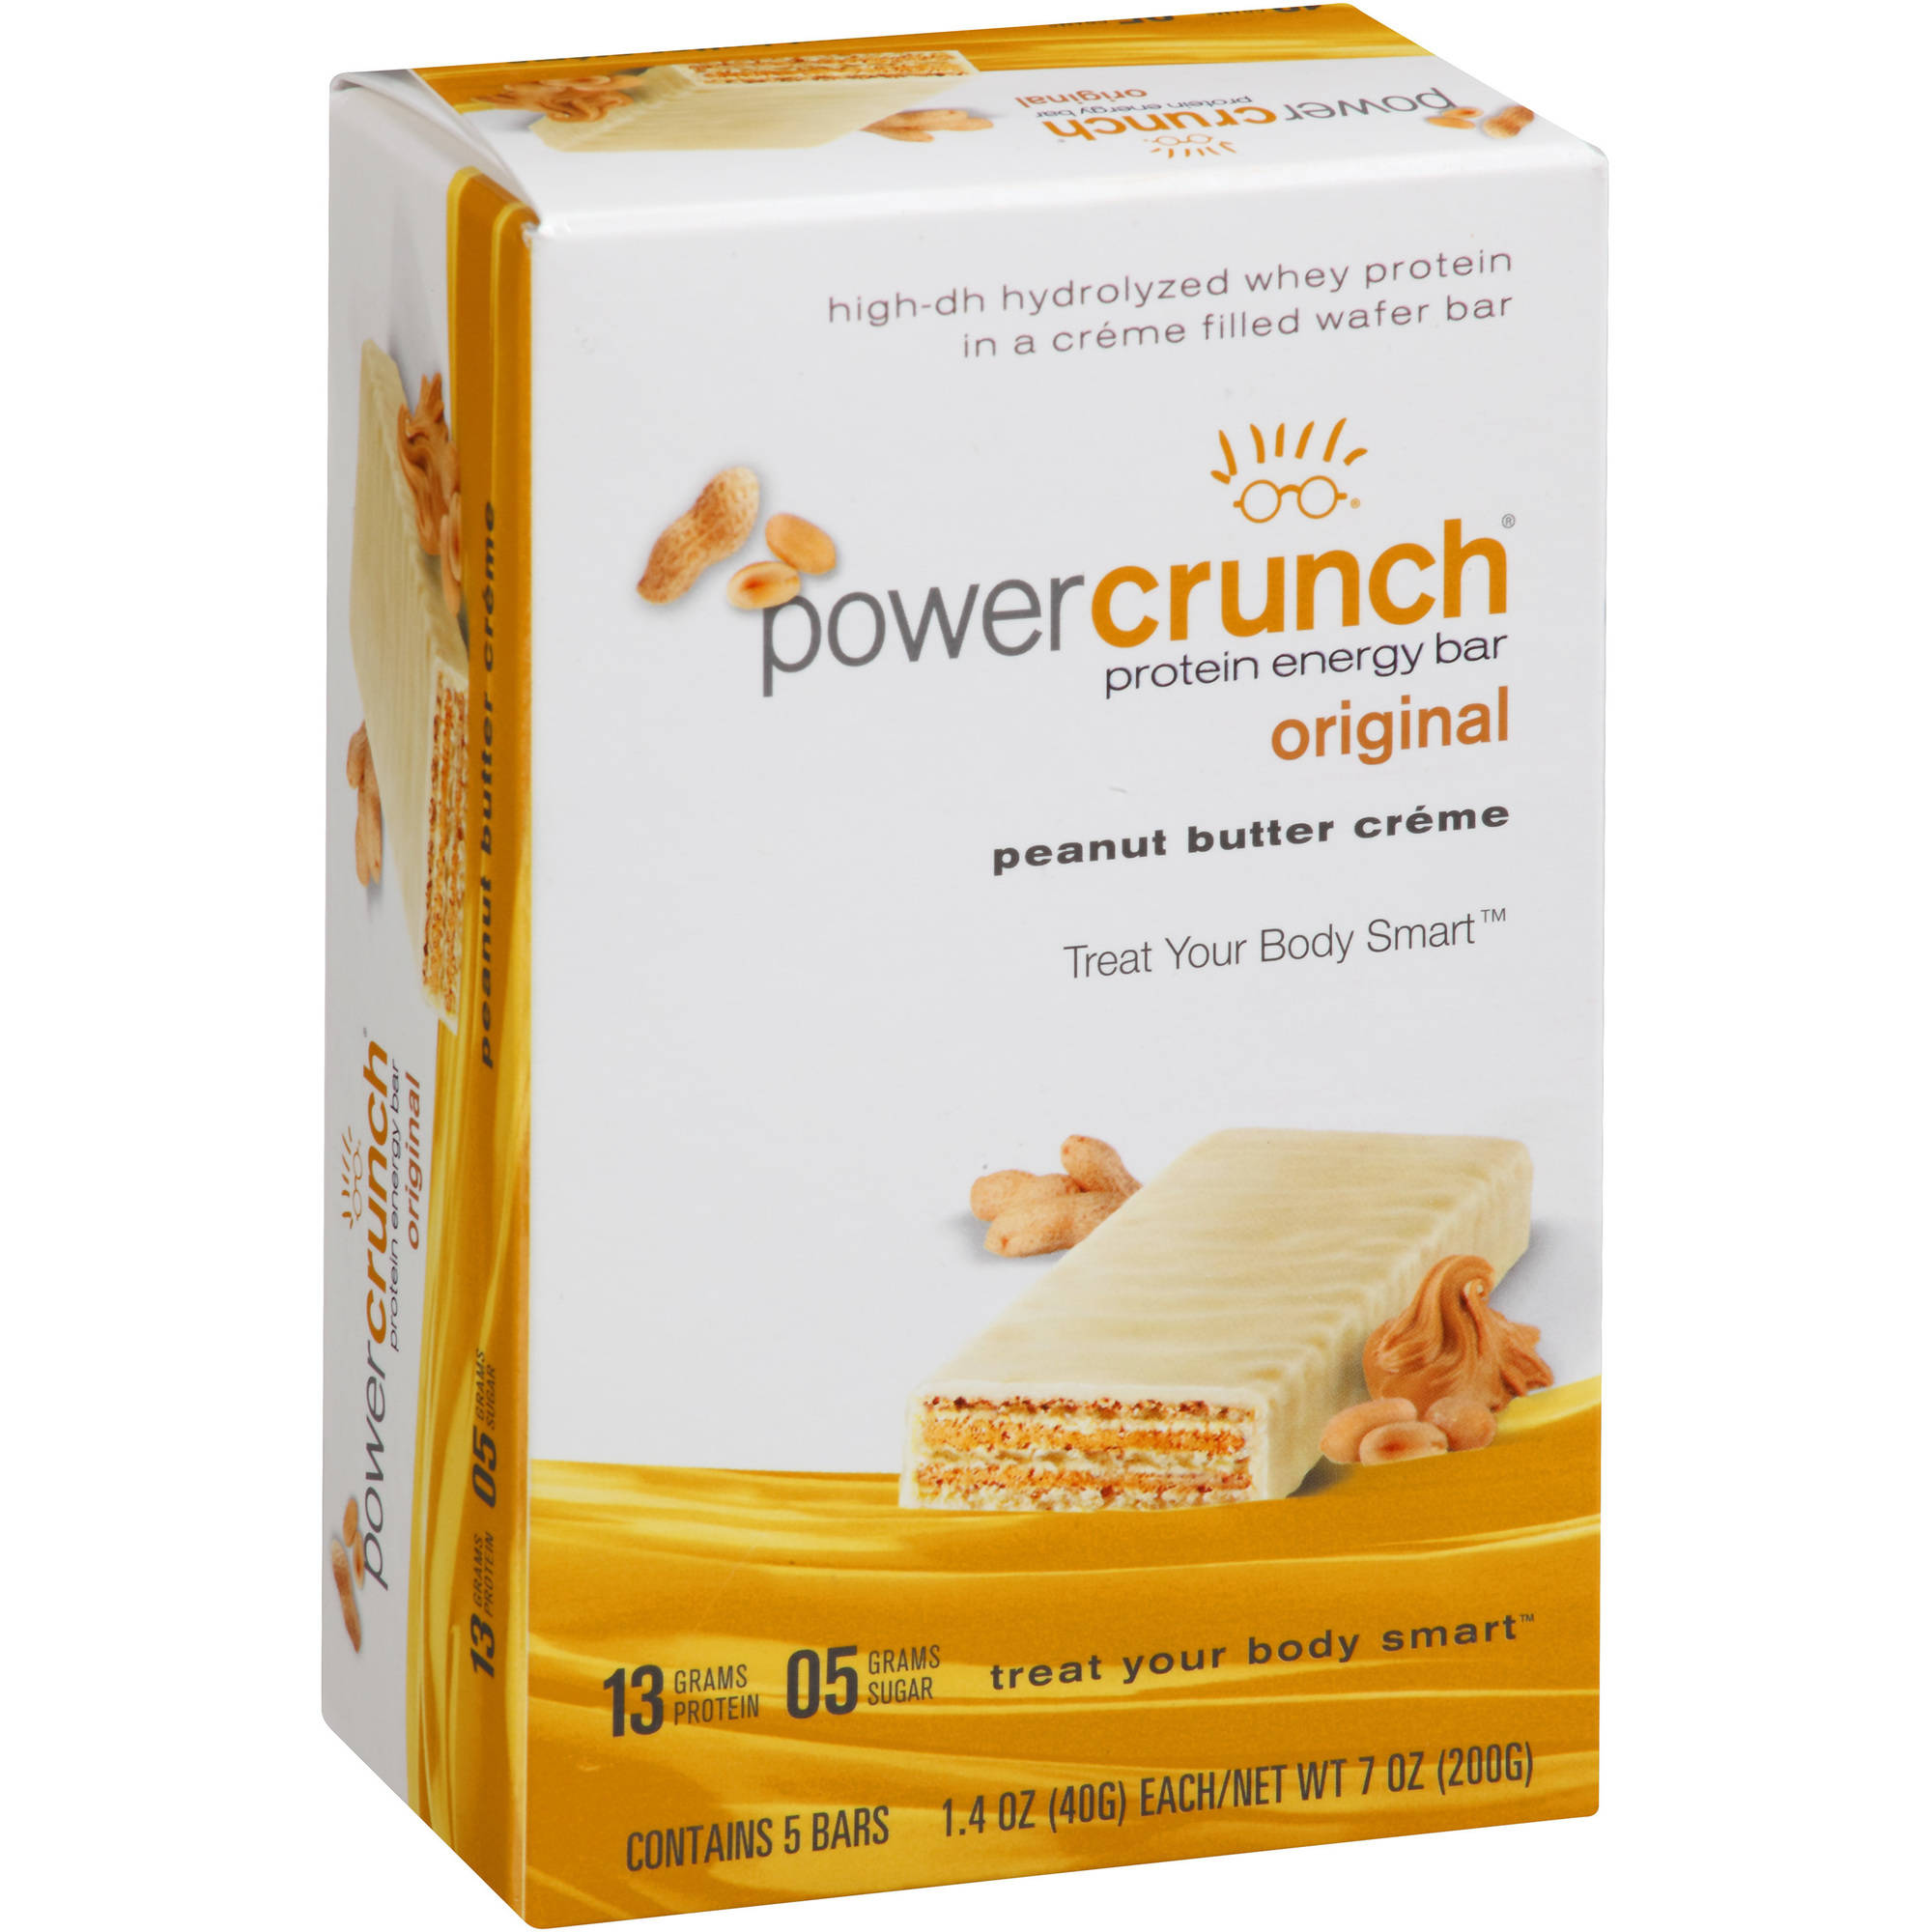 Power Crunch Original Peanut Butter Creme Protein Energy Bars, 1.4 oz, 5 count